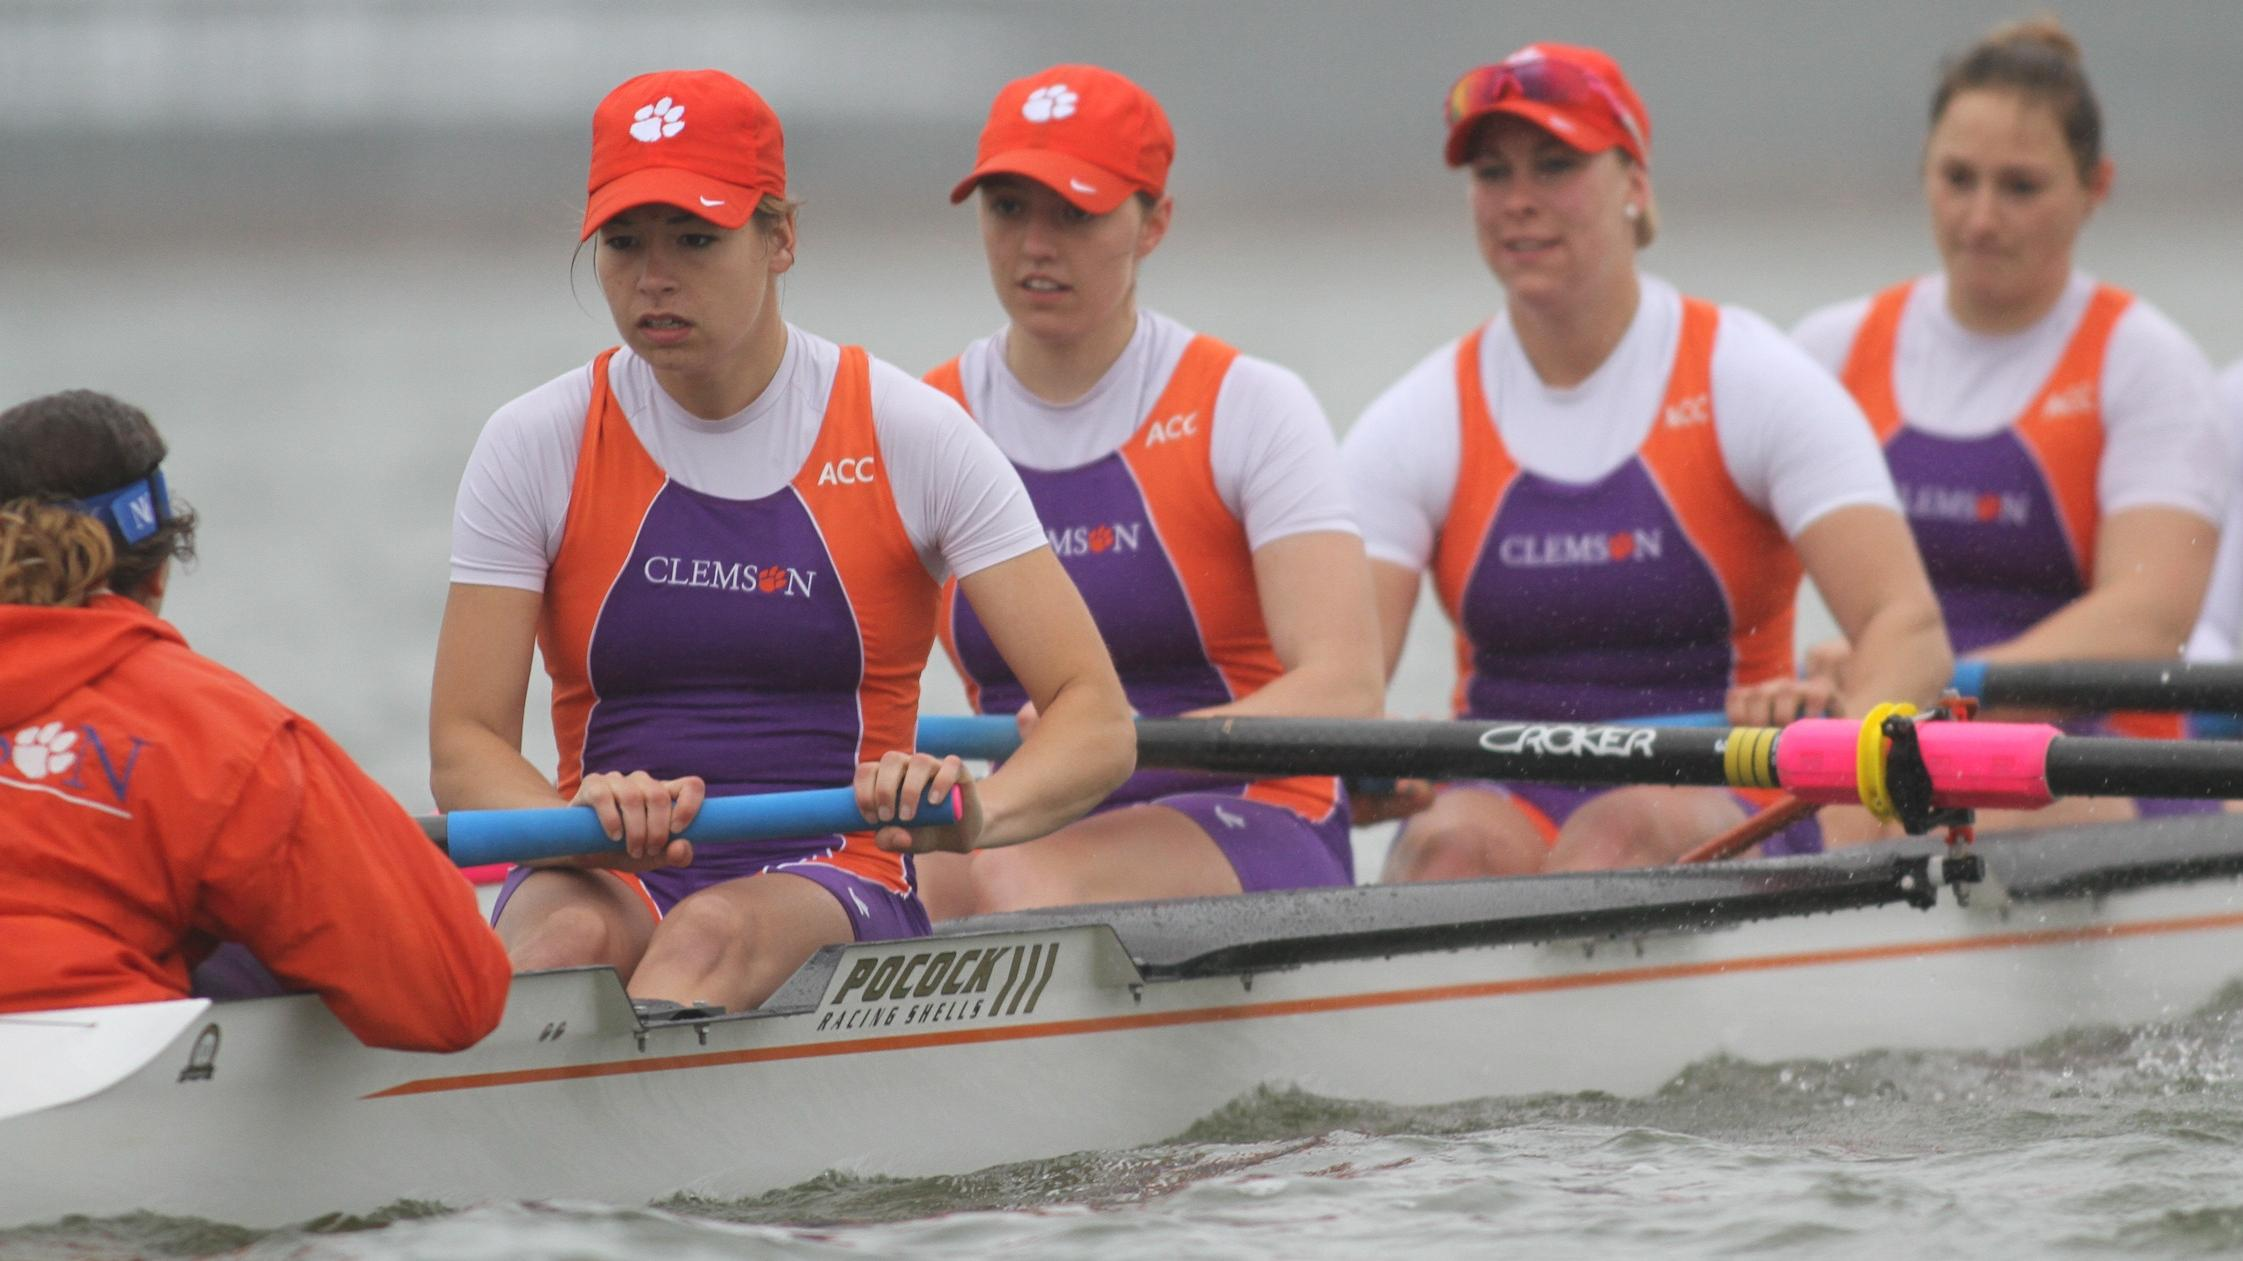 Tigers Battle Tough Competition, Finish Fourth at ACC Championships